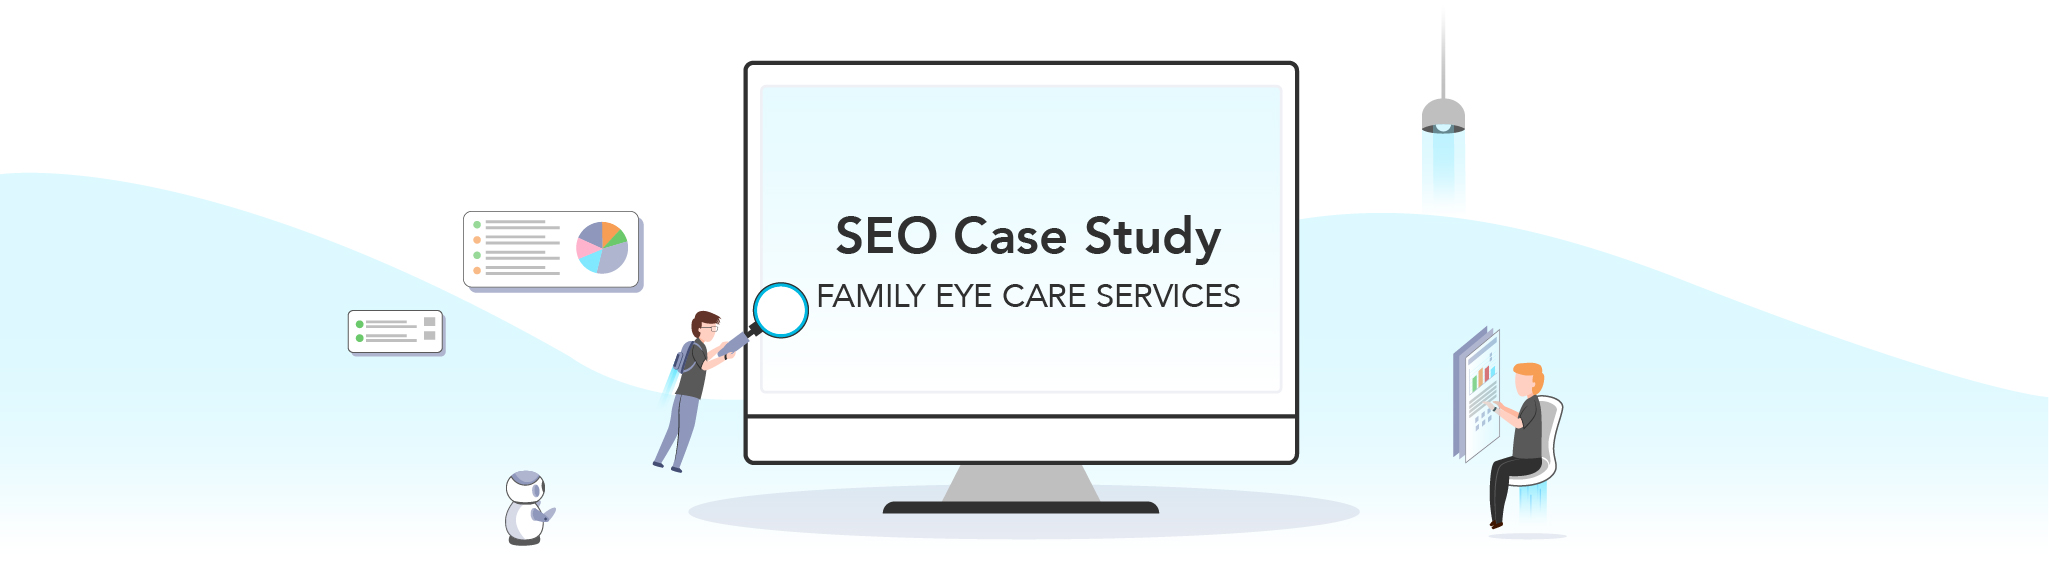 Eye Care SEO Case Study